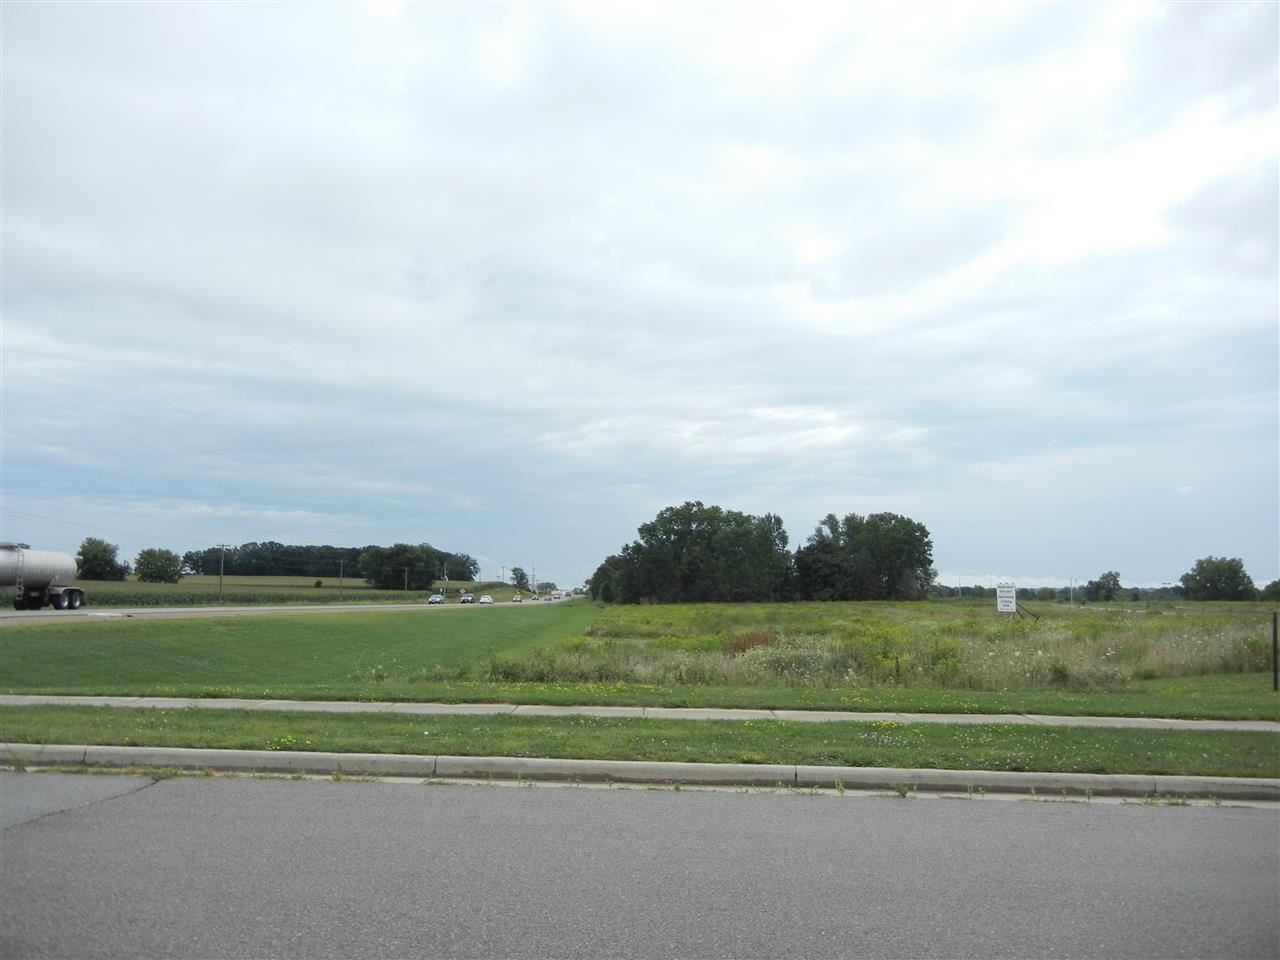 Lot 7 Liuna Way, Deforest, WI 53532